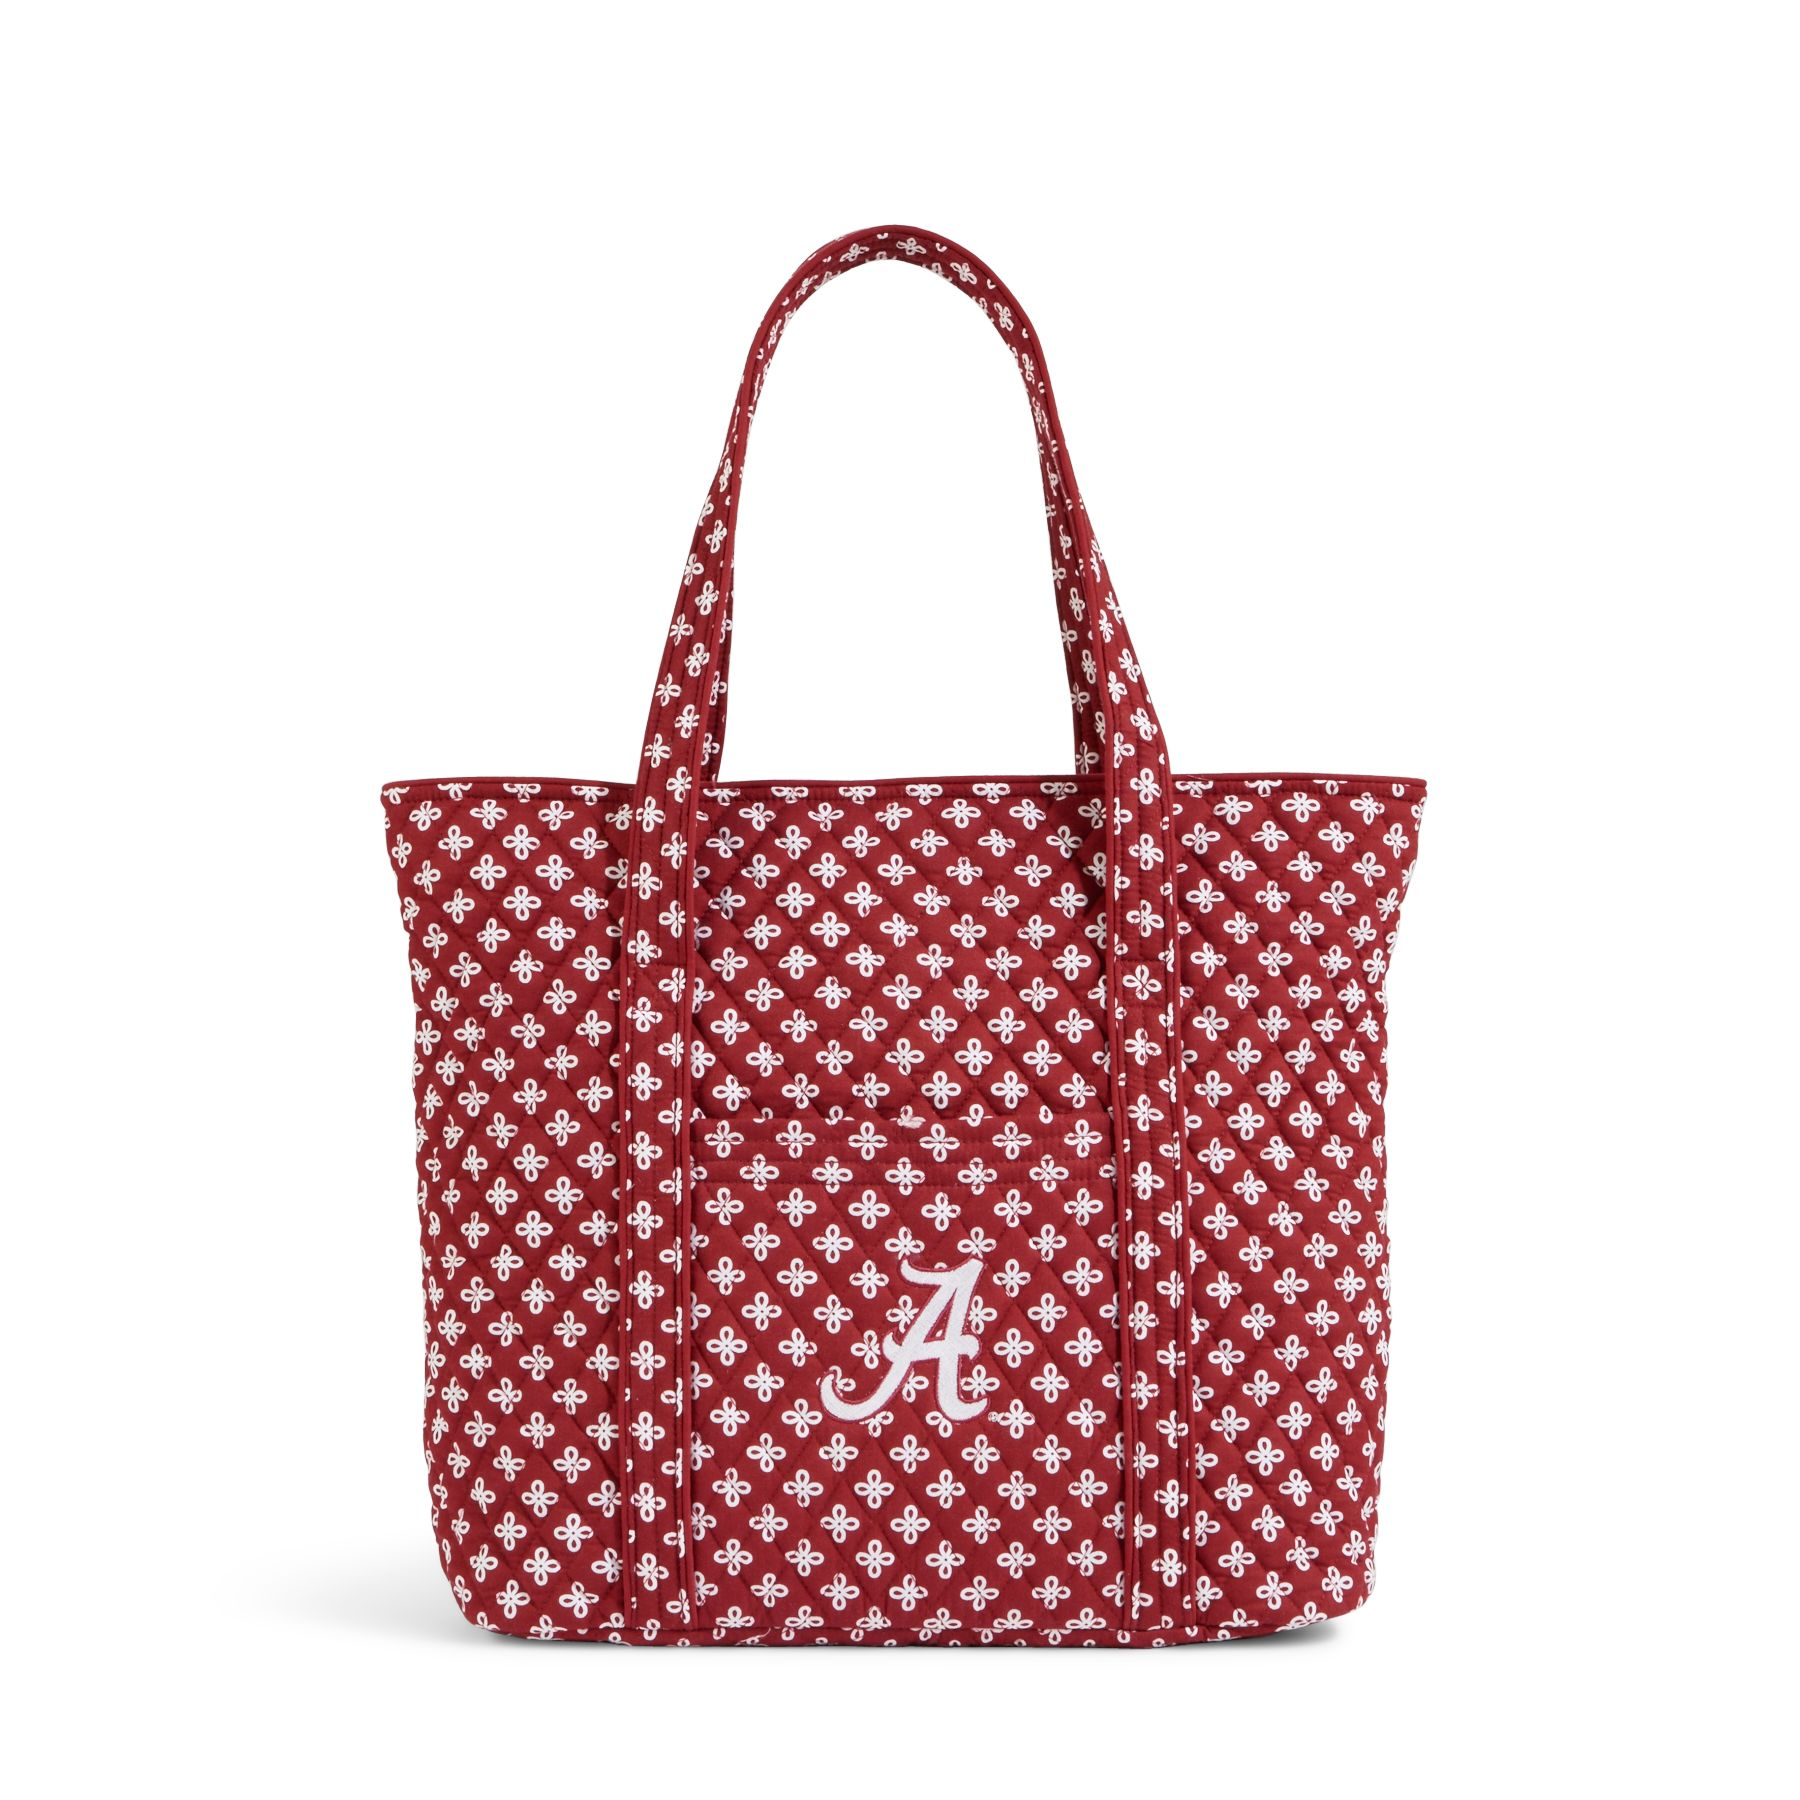 Vera Bradley Vera 2.0 Tote in Crimson/White Mini Concerto with Alabama